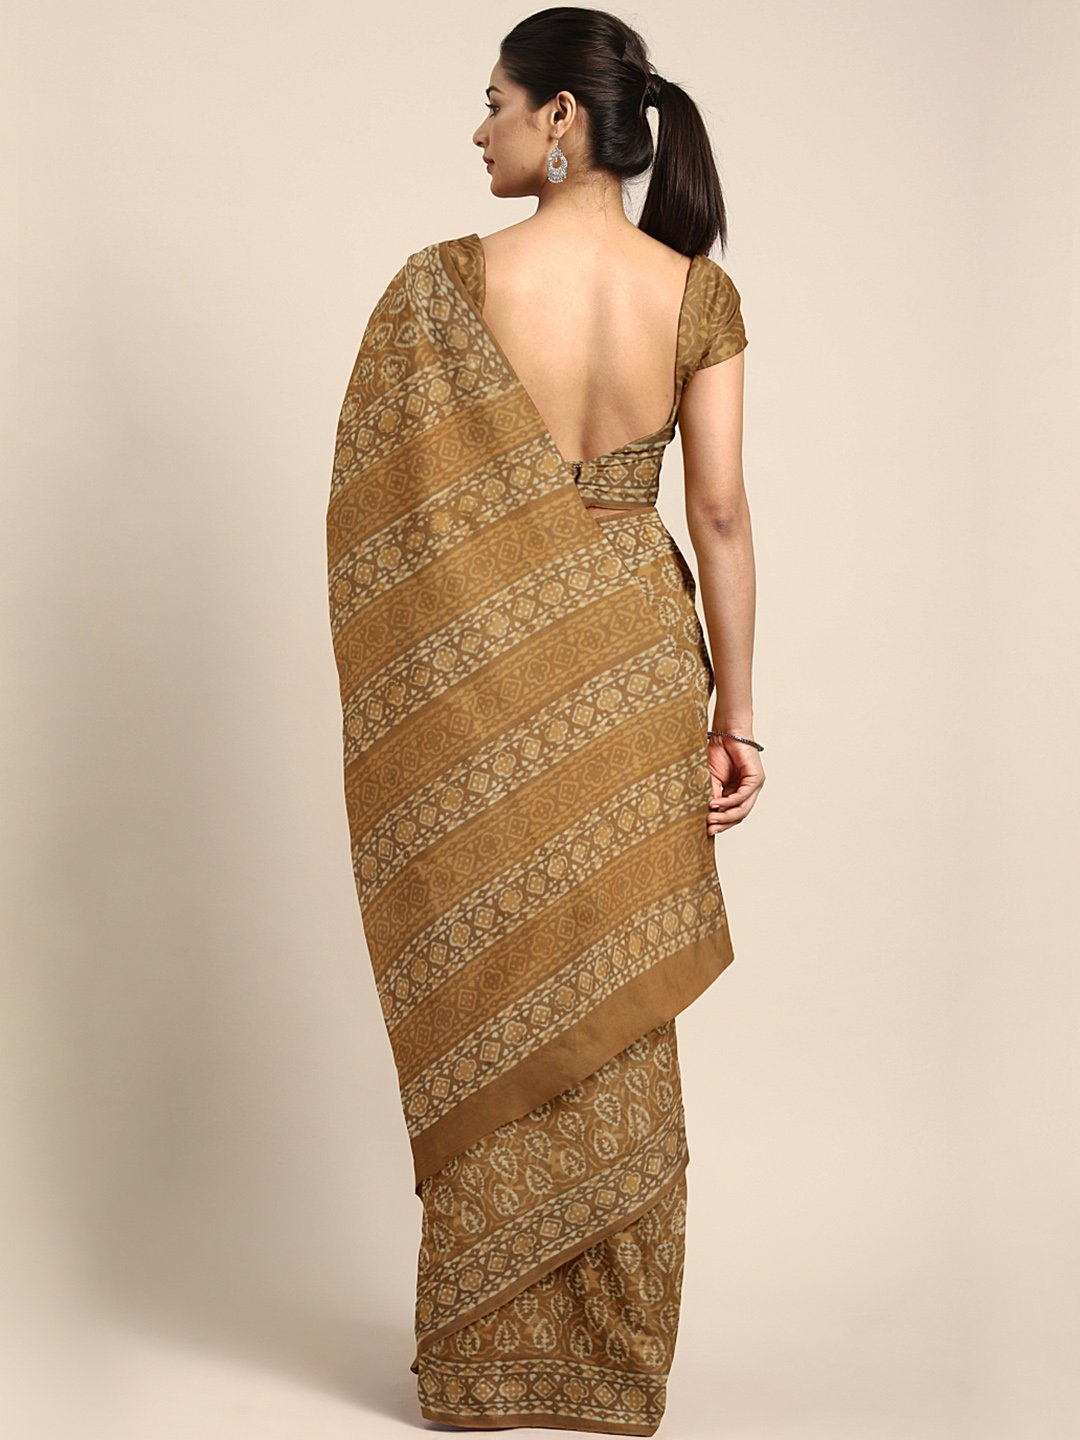 Brown Mud Resist Handblock Print Handcrafted Cotton Saree-Saree-Kalakari India-BHKPSA0035-Cotton, Dabu, Geographical Indication, Hand Blocks, Hand Crafted, Heritage Prints, Indigo, Natural Dyes, Sarees, Sustainable Fabrics-[Linen,Ethnic,wear,Fashionista,Handloom,Handicraft,Indigo,blockprint,block,print,Cotton,Chanderi,Blue, latest,classy,party,bollywood,trendy,summer,style,traditional,formal,elegant,unique,style,hand,block,print, dabu,booti,gift,present,glamorous,affordable,collectible,Sari,Sare